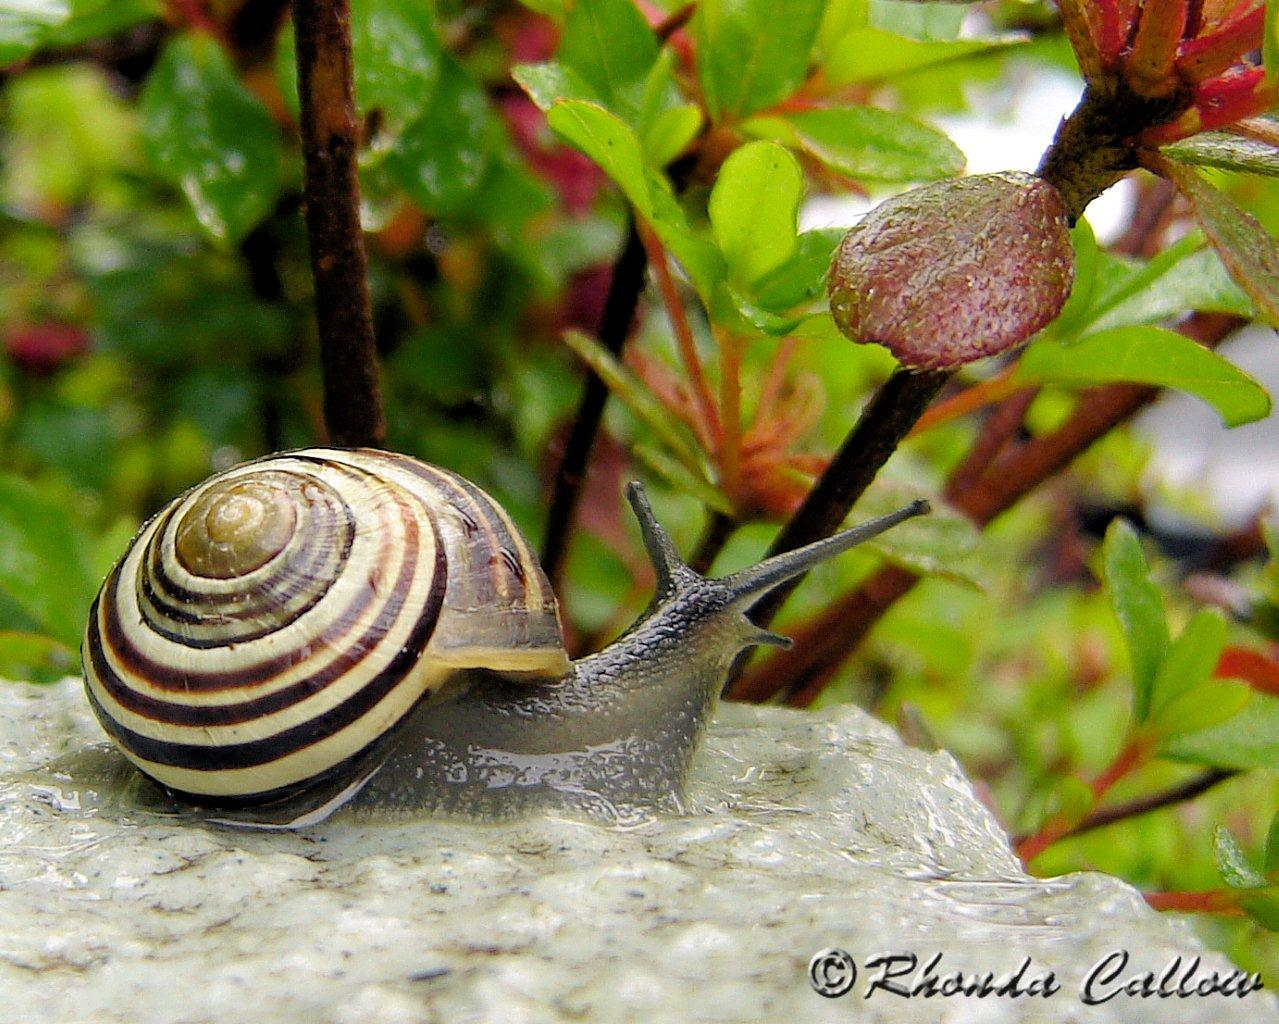 Close-up of a snail in the rain